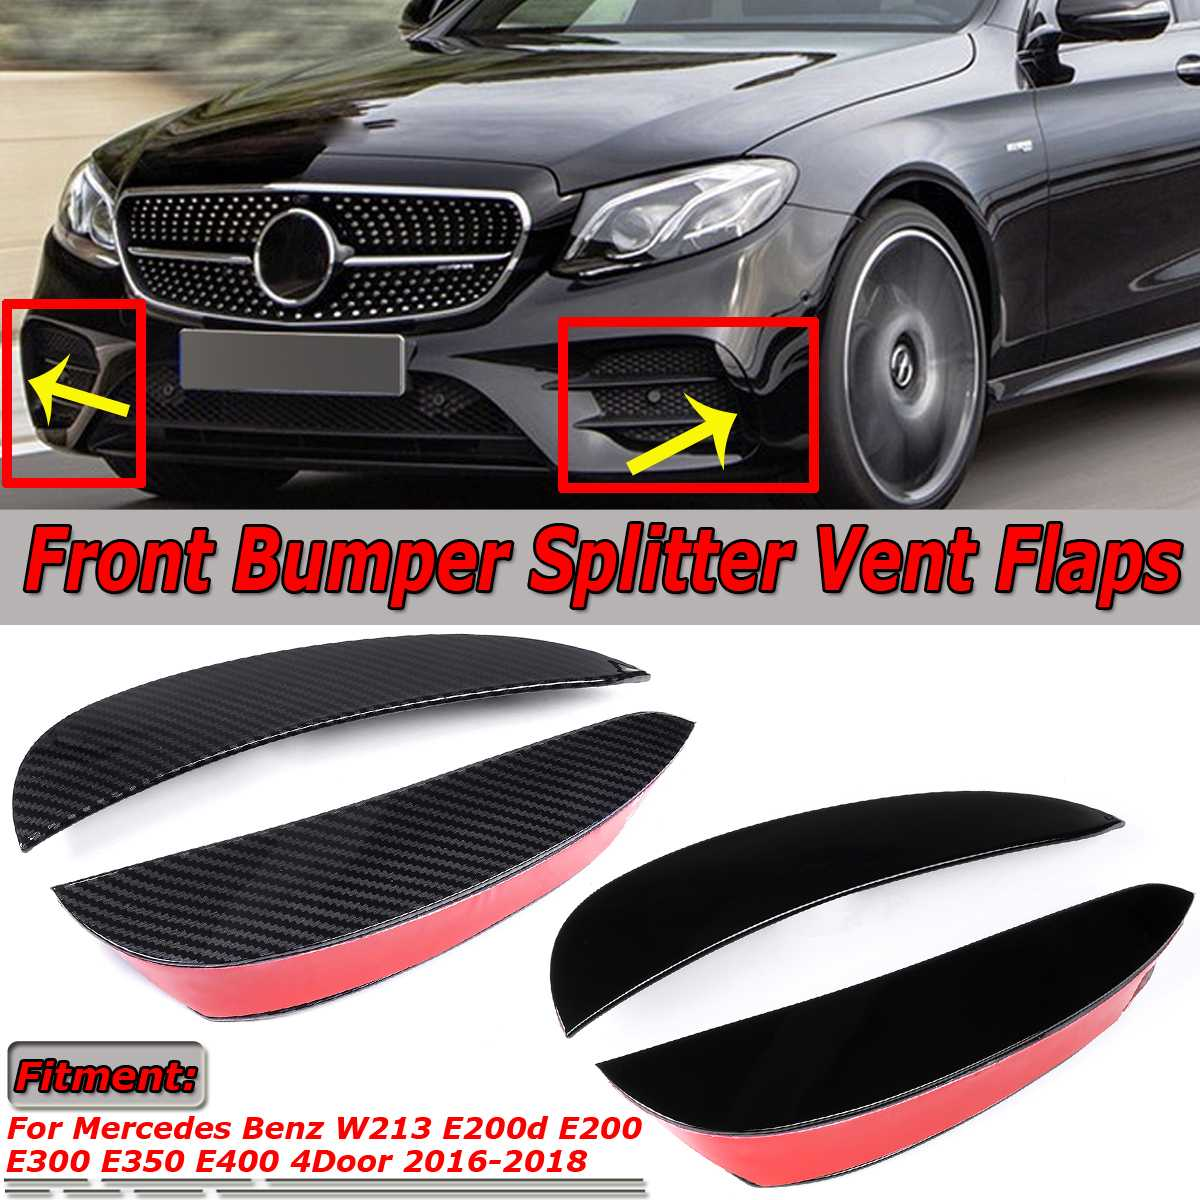 Rear Side Decorative Cover Trim For 2018 2019 Benz A class W177 AMG Hatchback WO